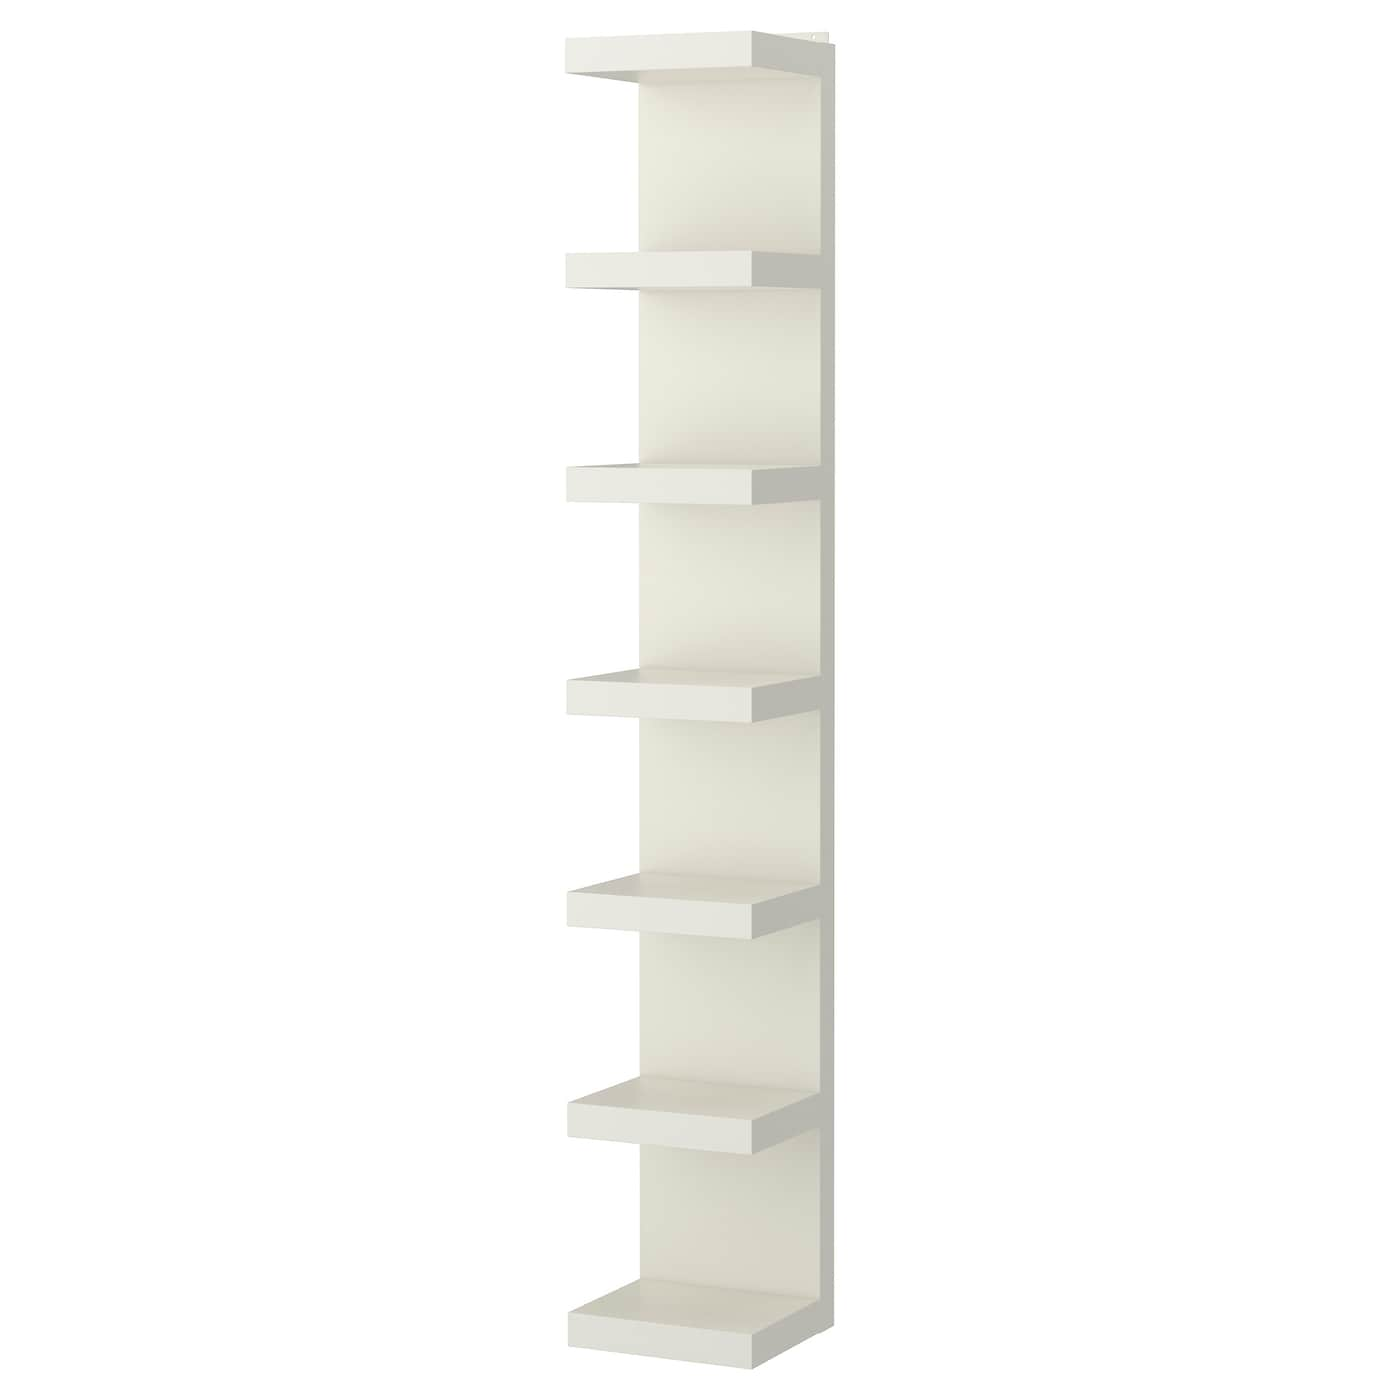 IKEA LACK wall shelf unit